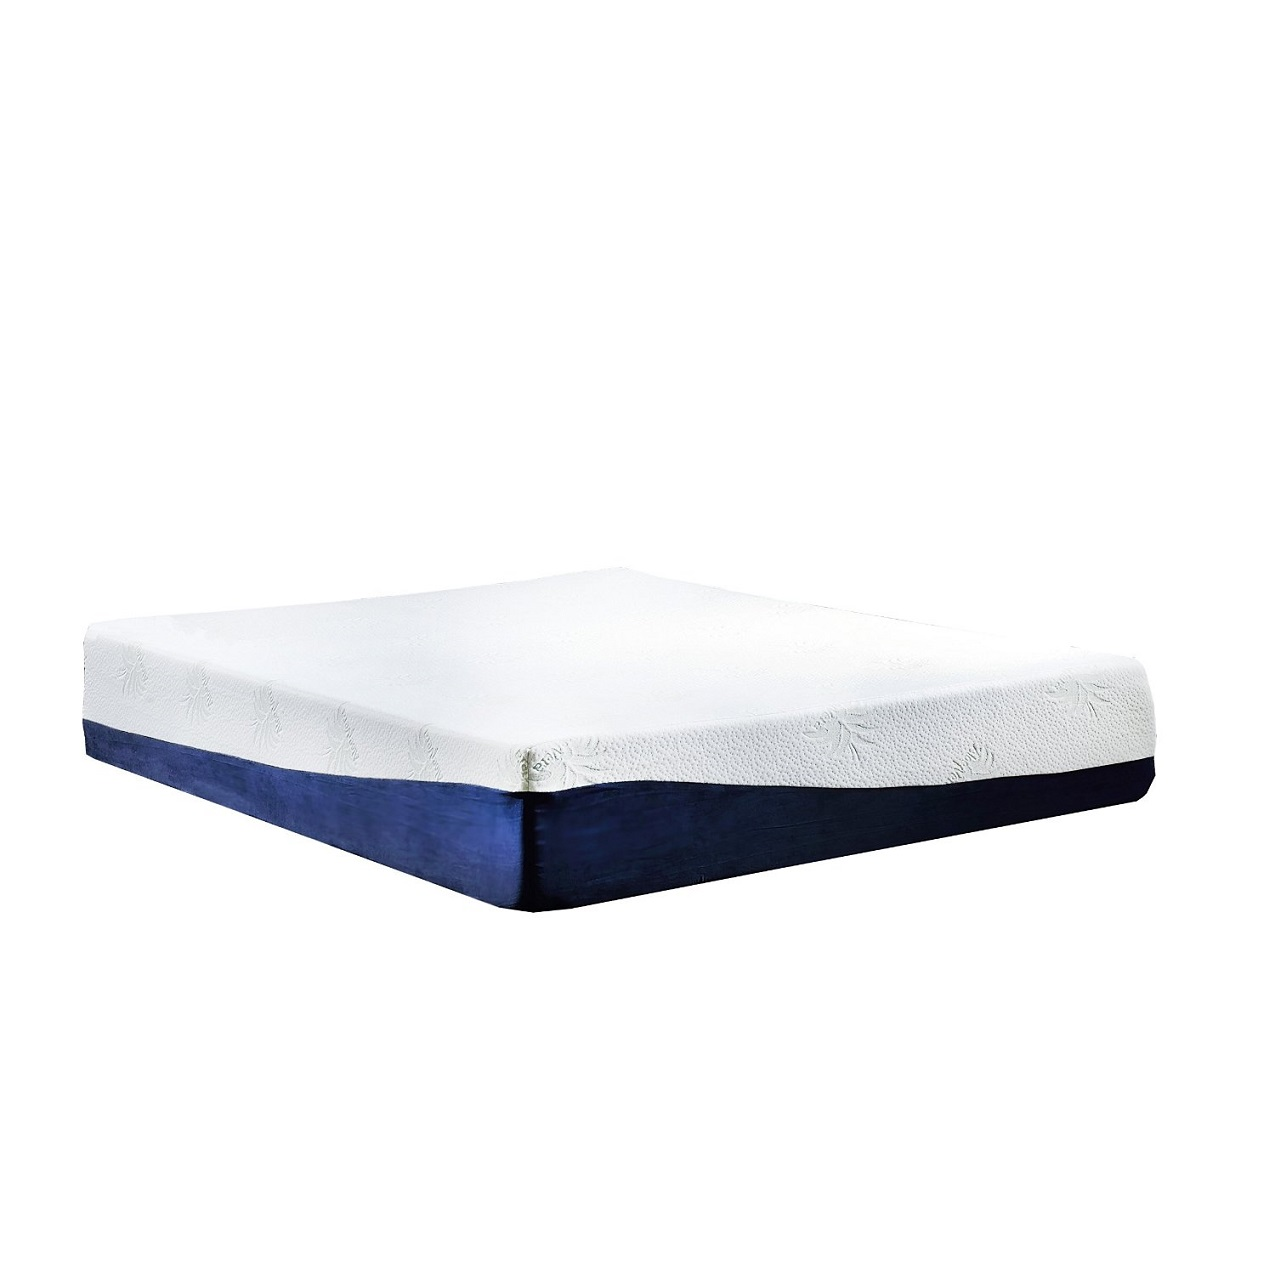 Swiss Ortho Sleep 13-Inch High-Density, 3 x Layered Gel & Memory Foam Mattress with Bamboo Cover Image